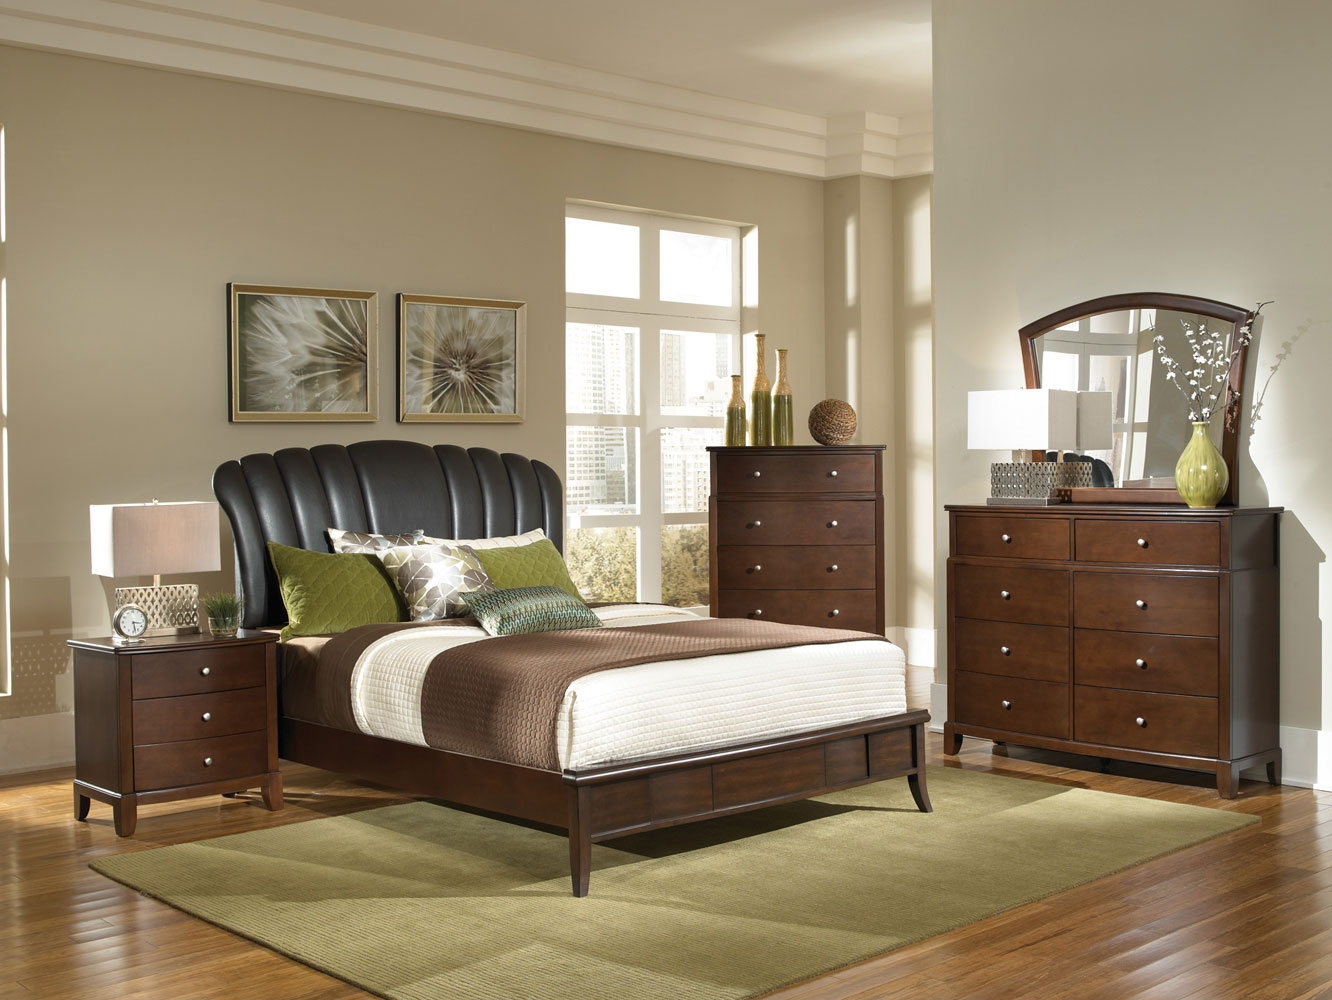 Coaster Addley Upholstered Low Profile Bedroom Set Dark Cherry Bed S